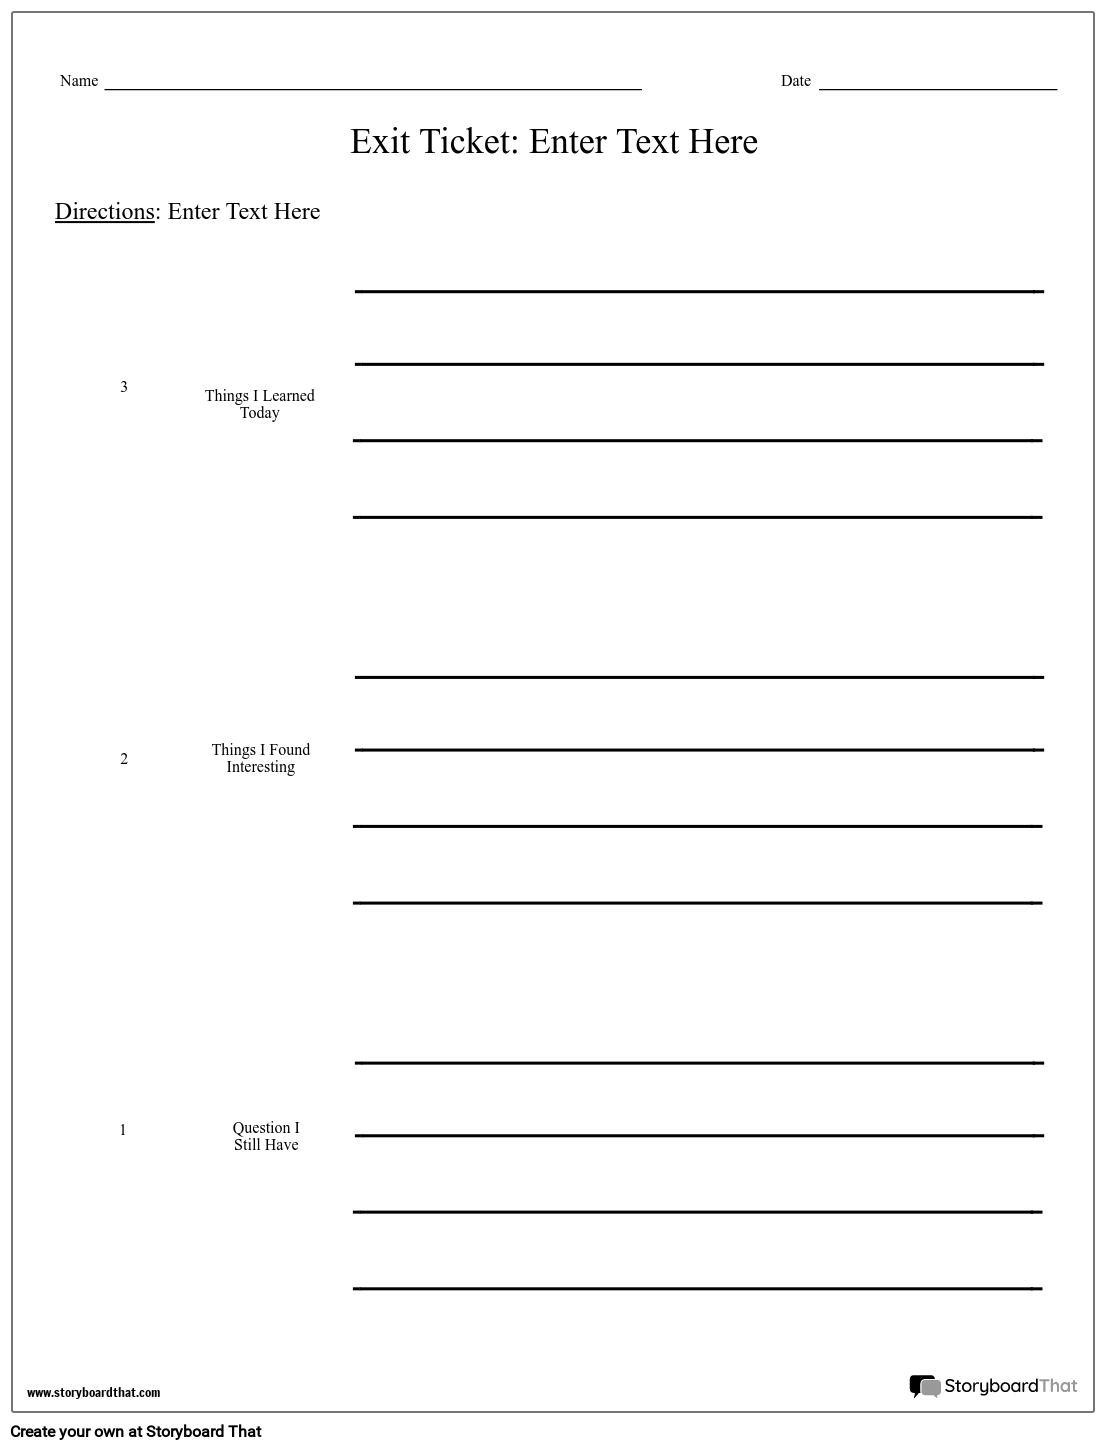 image relating to Printable Exit Tickets called Crank out an Exit Ticket Exit Ticket Template and Tips